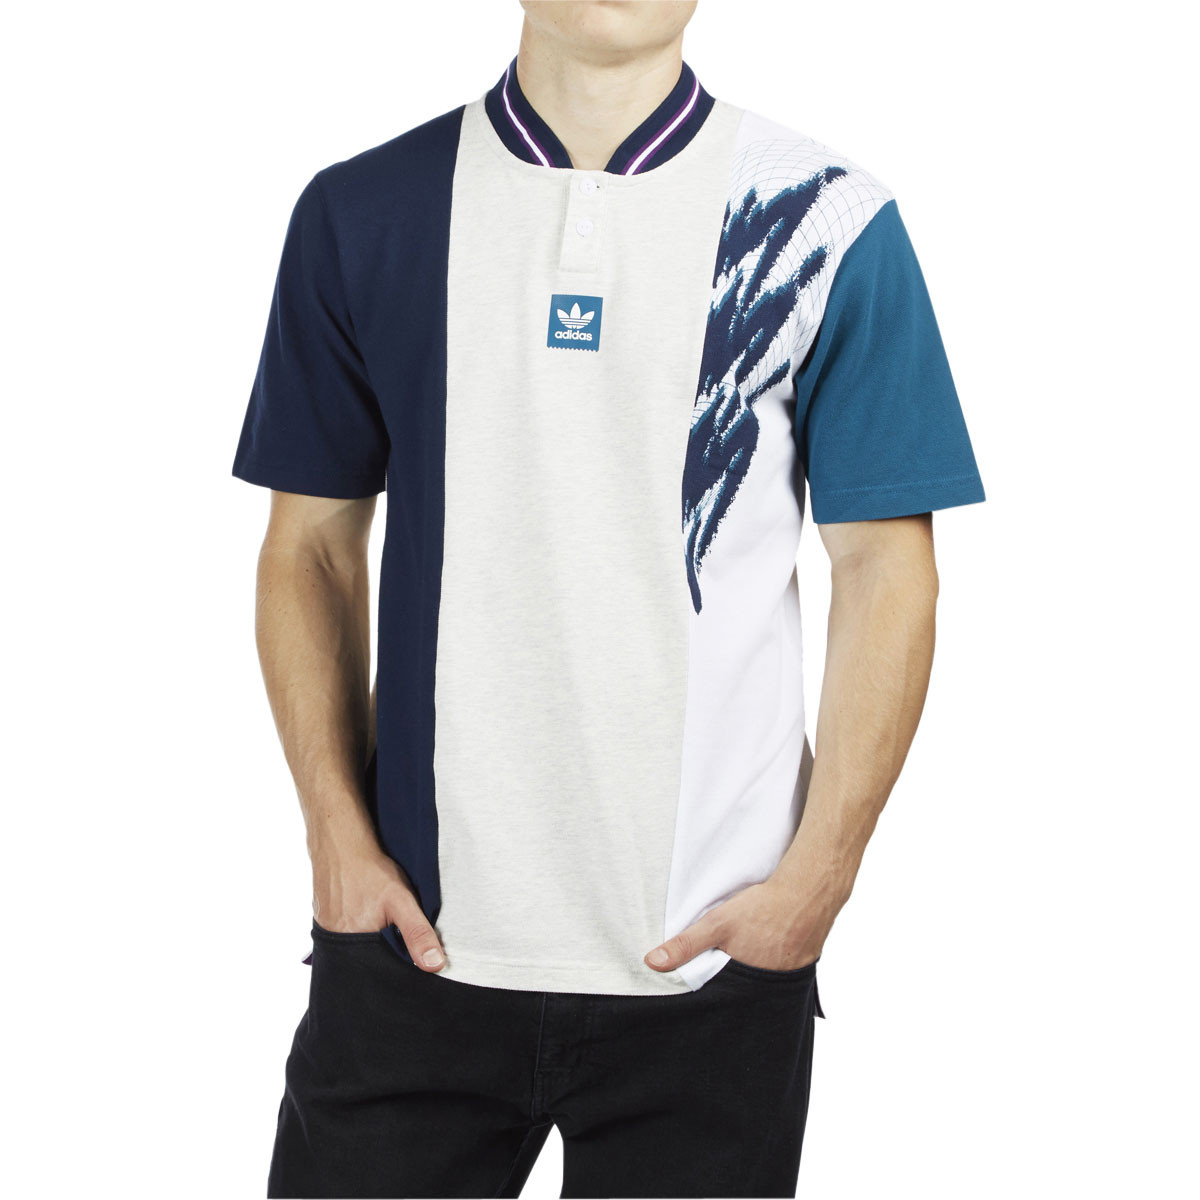 meet fe1a4 21711 Adidas Tennis Jersey - Pale Melange/Collegiate Navy/Real Teal